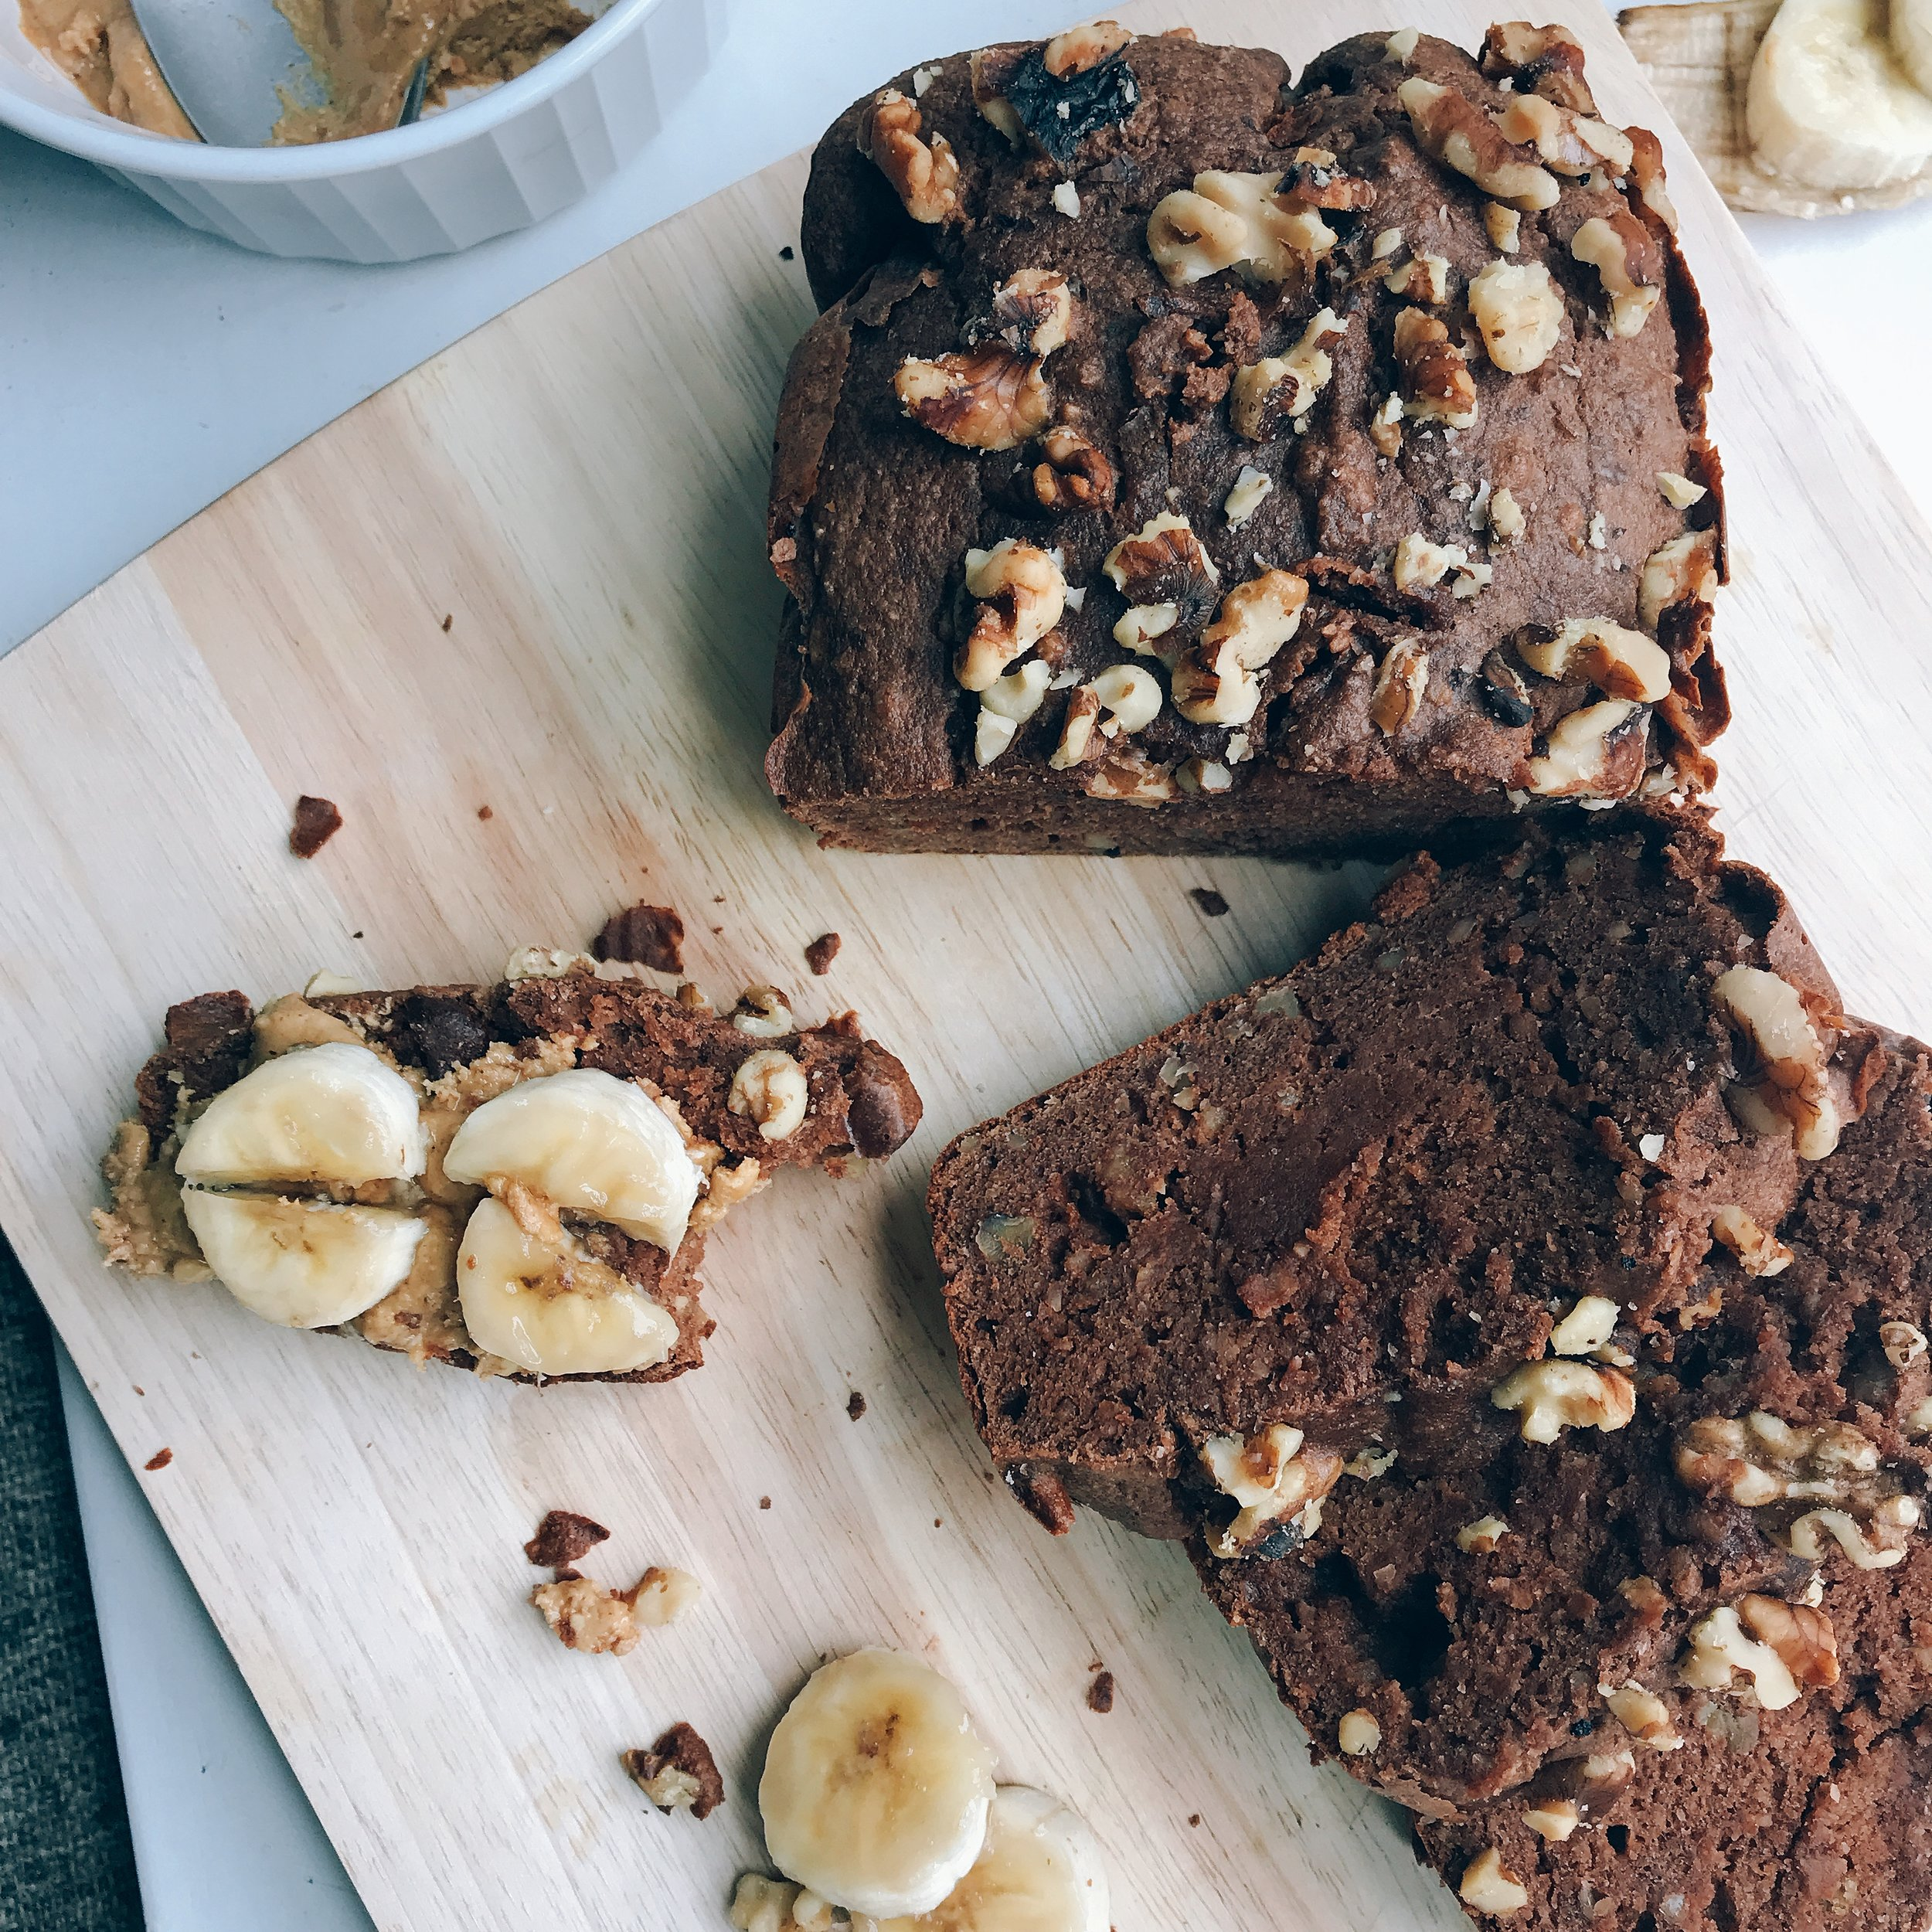 a hearty chocolate peanut butter banana bread for breakfast or snacking! Completely dairy free and gluten free, but super light and moist!